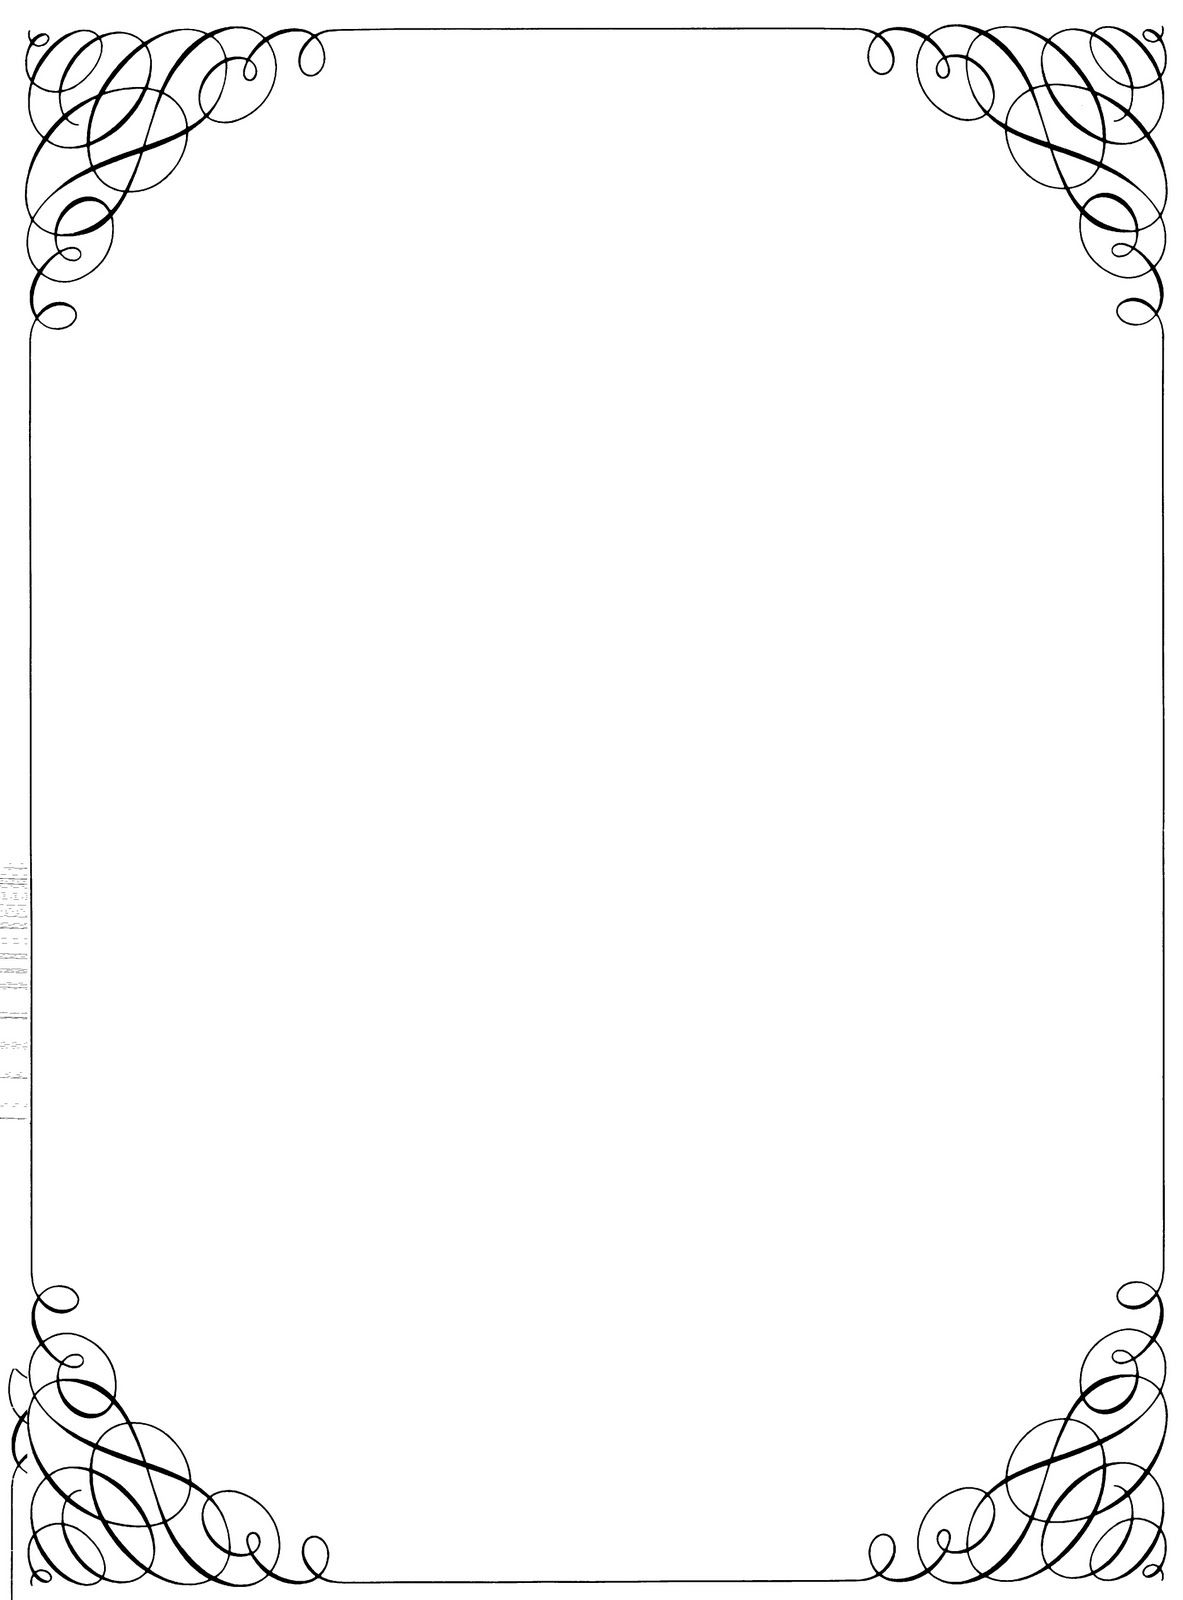 Scroll border | Done By Hand | Pinterest | Briefpapier, Rahmen und ...